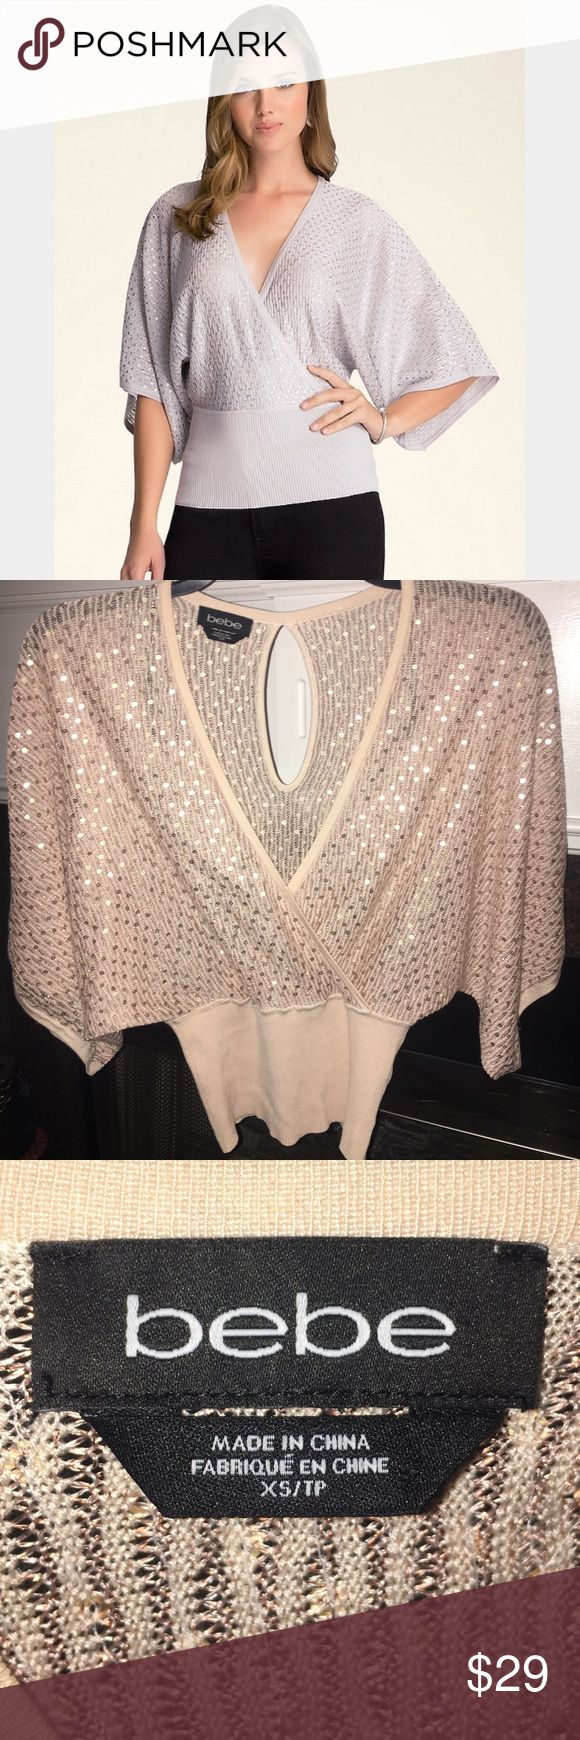 BEBE Gold Sequin Kimono Batwing Sweater Top XS S Super jazzy BEBE Sweater top! It is a nude tan/light brown color with gold sequins and metallic weave. Dramatic v-neck in the front and keyhole opening in the back. Ribbed trim hugs the curves and makes you look amazing!!! 1st pic is stock photo-making it look more silver. Other pics are mine of actual top. It's a size XS but can fit a S Small as well. bebe Sweaters V-Necks